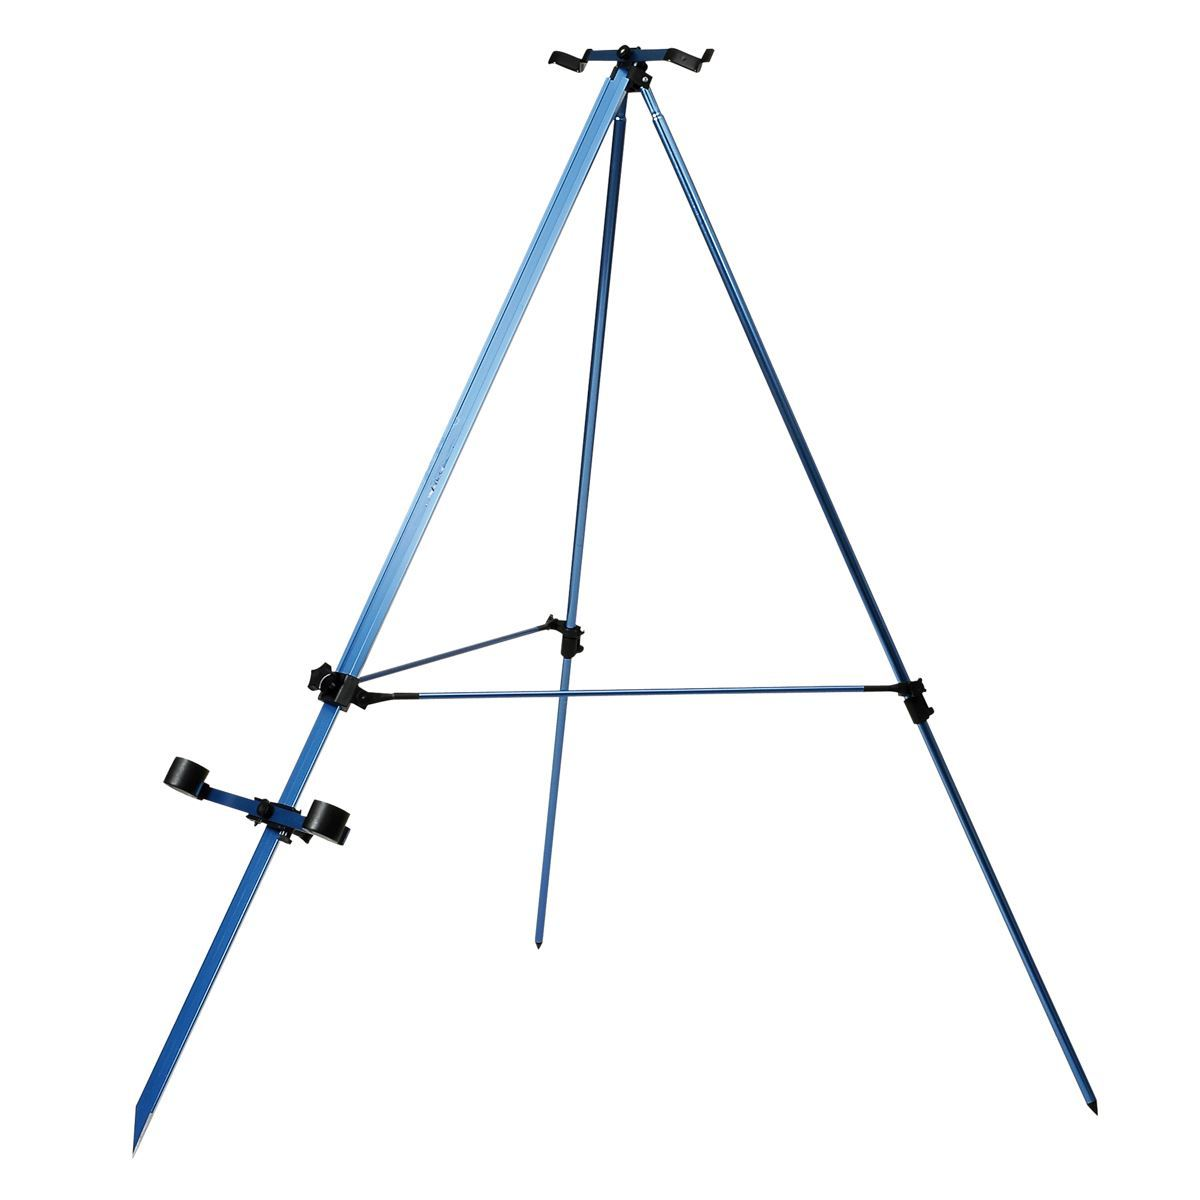 DAM TELESCOPIC SURF TRIPOD (BLUE ANODIZED)